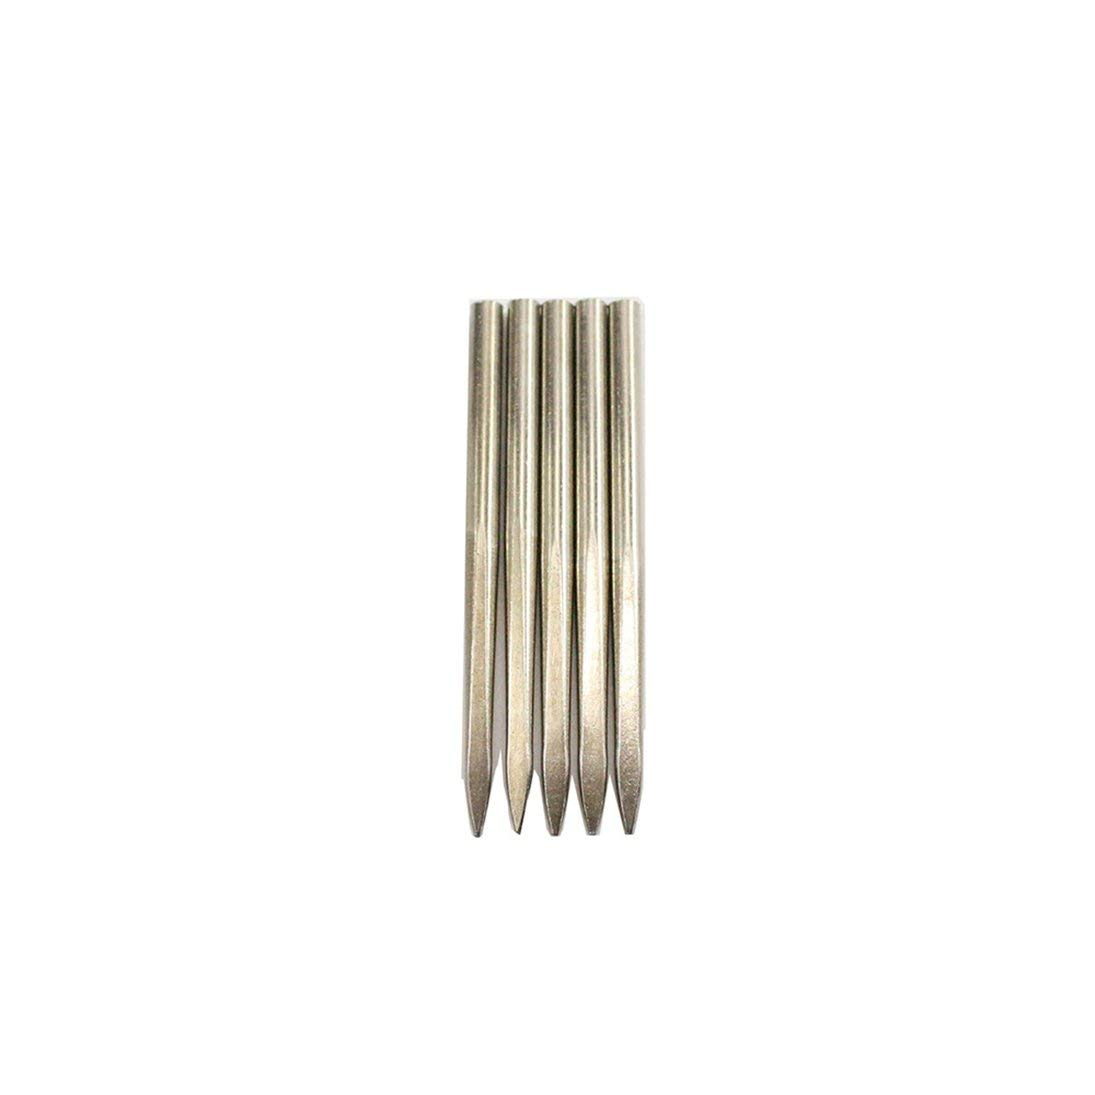 Baynne Flat Head Stainless Steel Needle Paracord FID Tool Lacing Stitching Needles for Paracord Bracelet Leather Weaving Tool